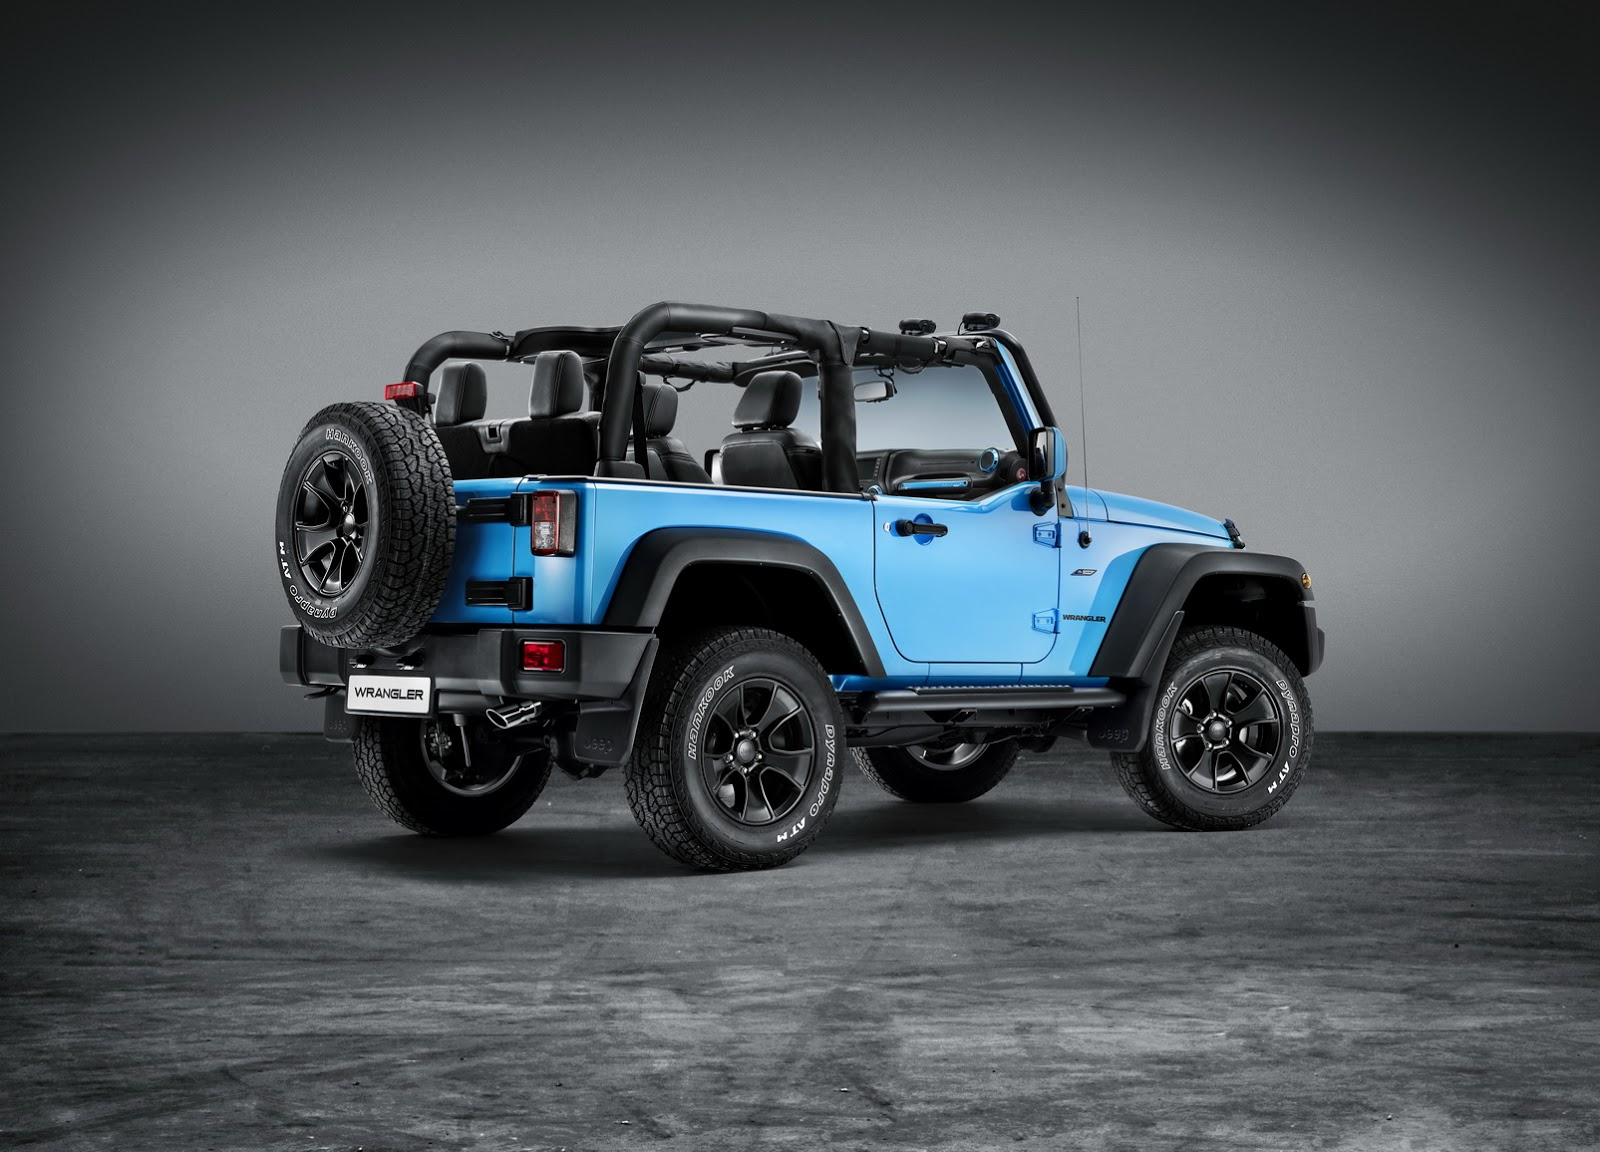 jeep wrangler rubicon with mopar accessories arrives in geneva carz tuning. Black Bedroom Furniture Sets. Home Design Ideas